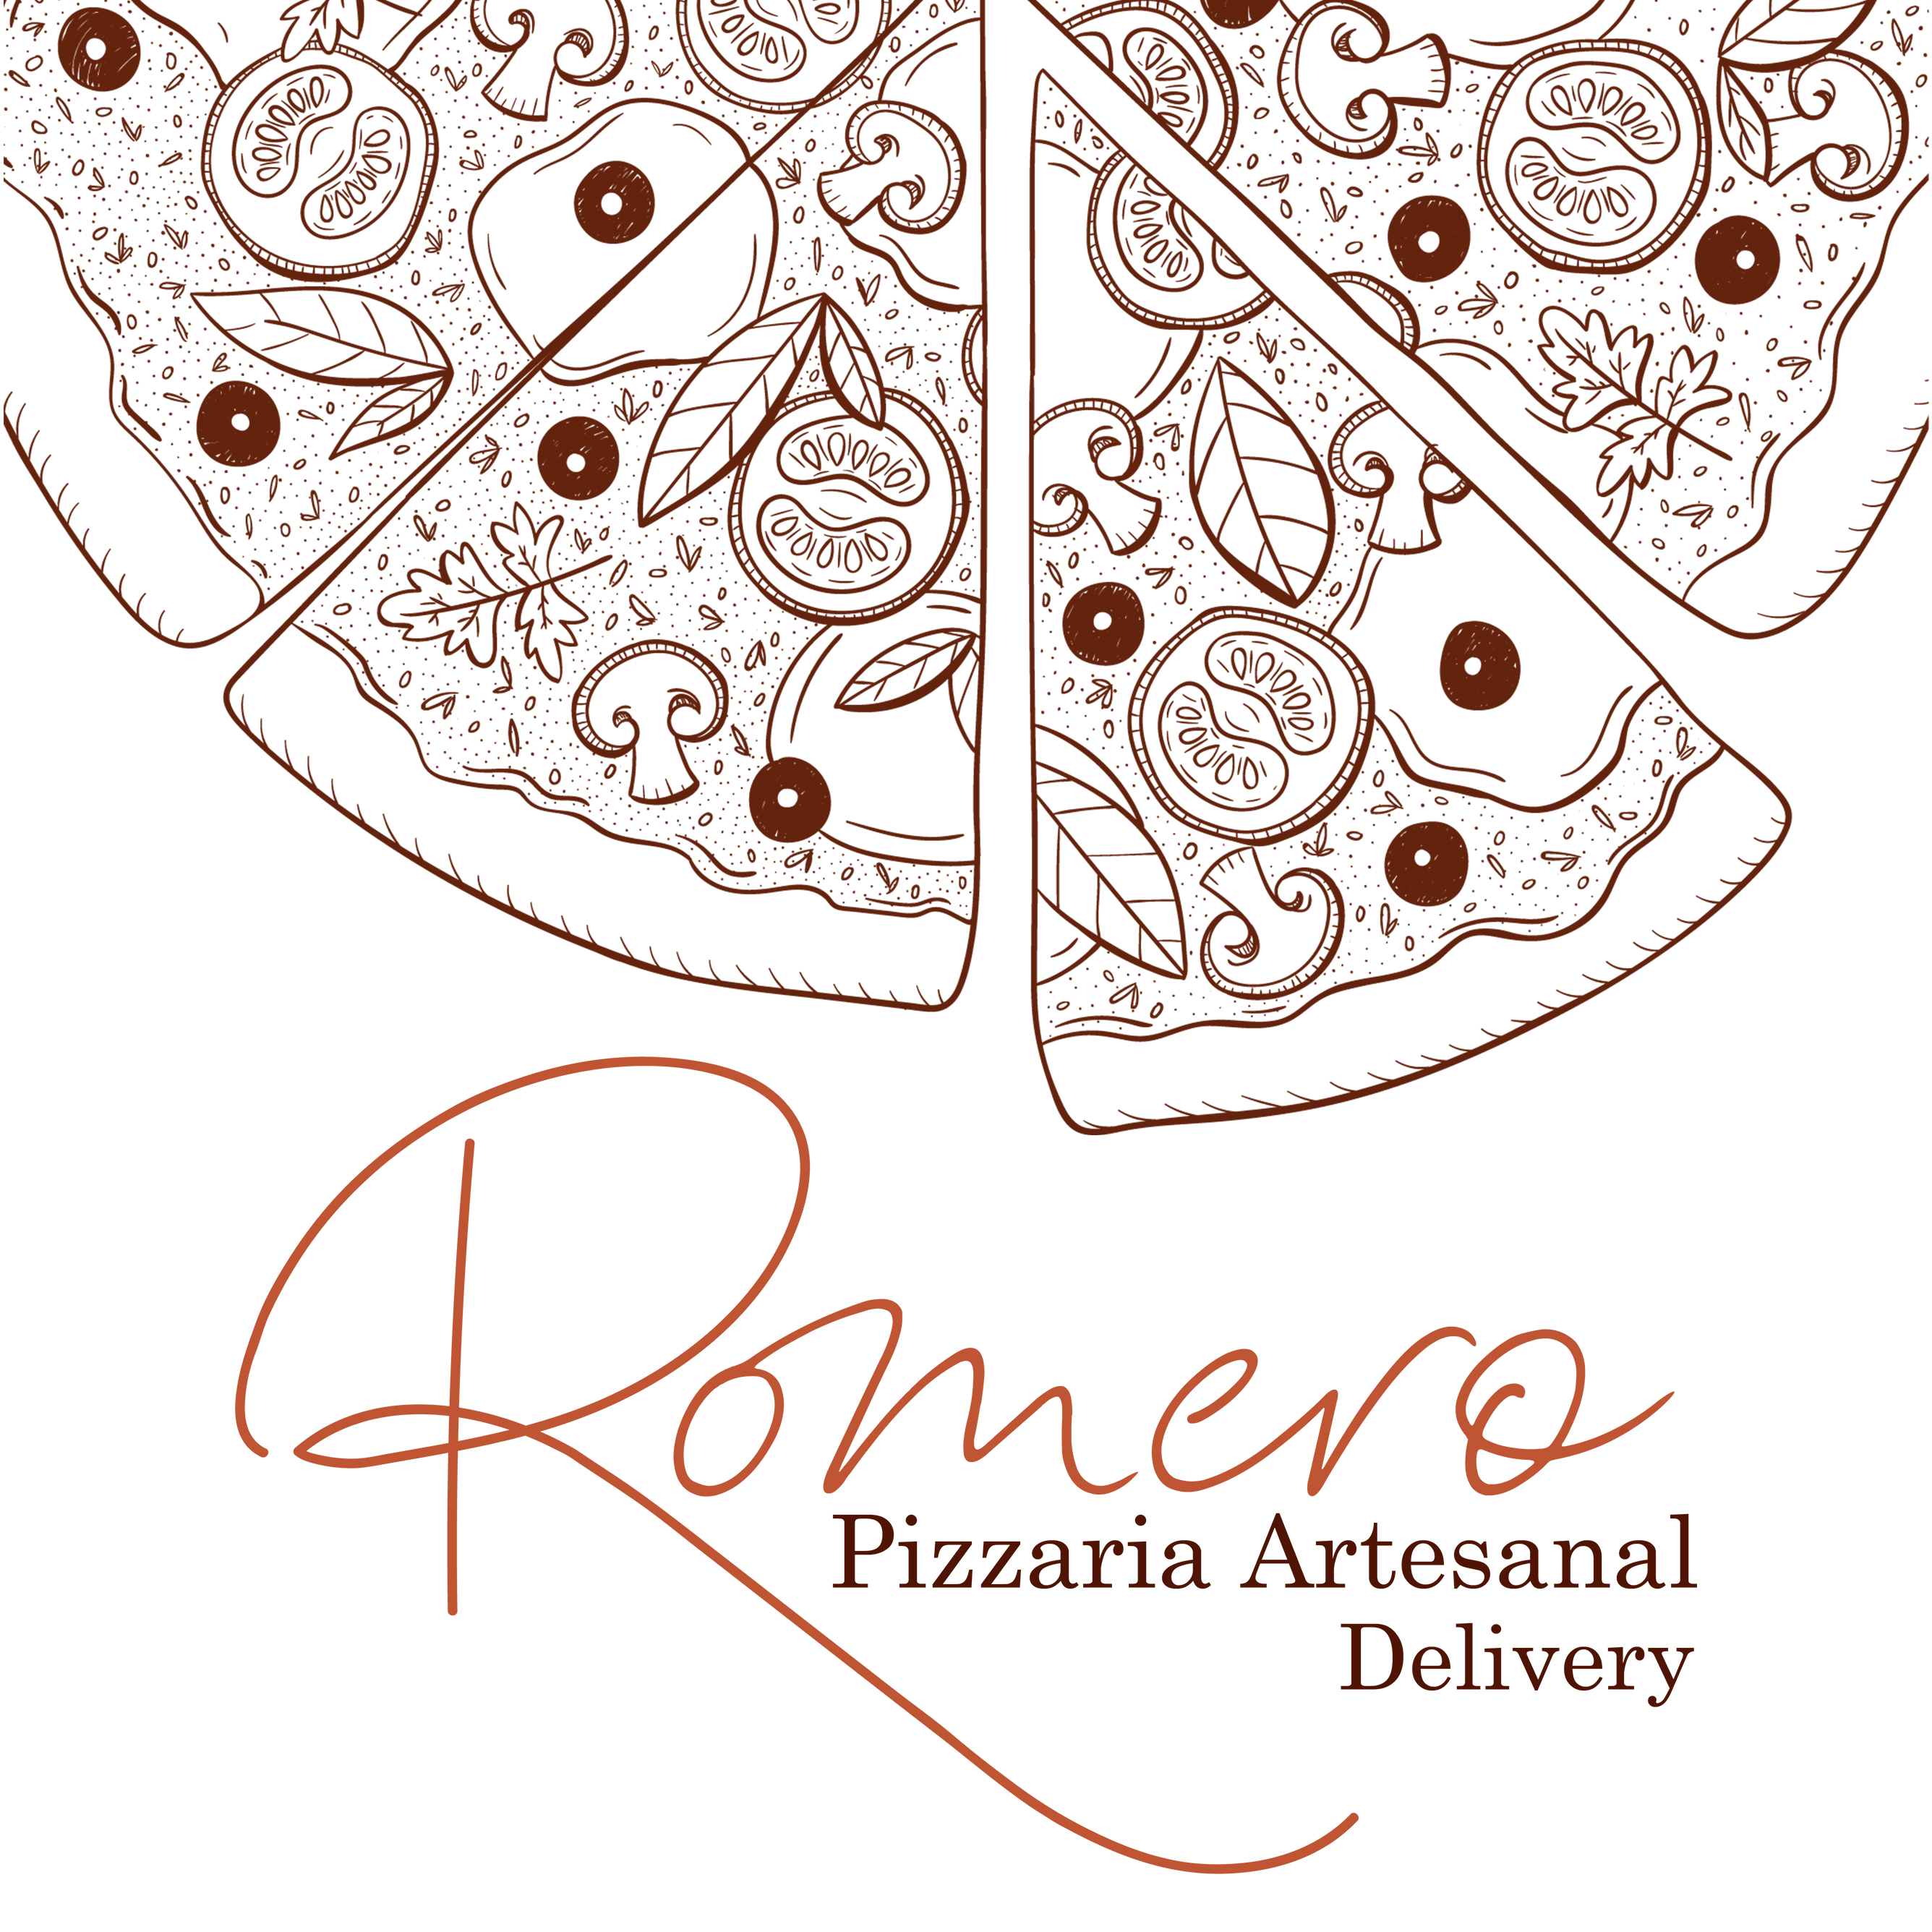 Logo-Pizzaria - Romero Pizzaria Artesanal - Delivery